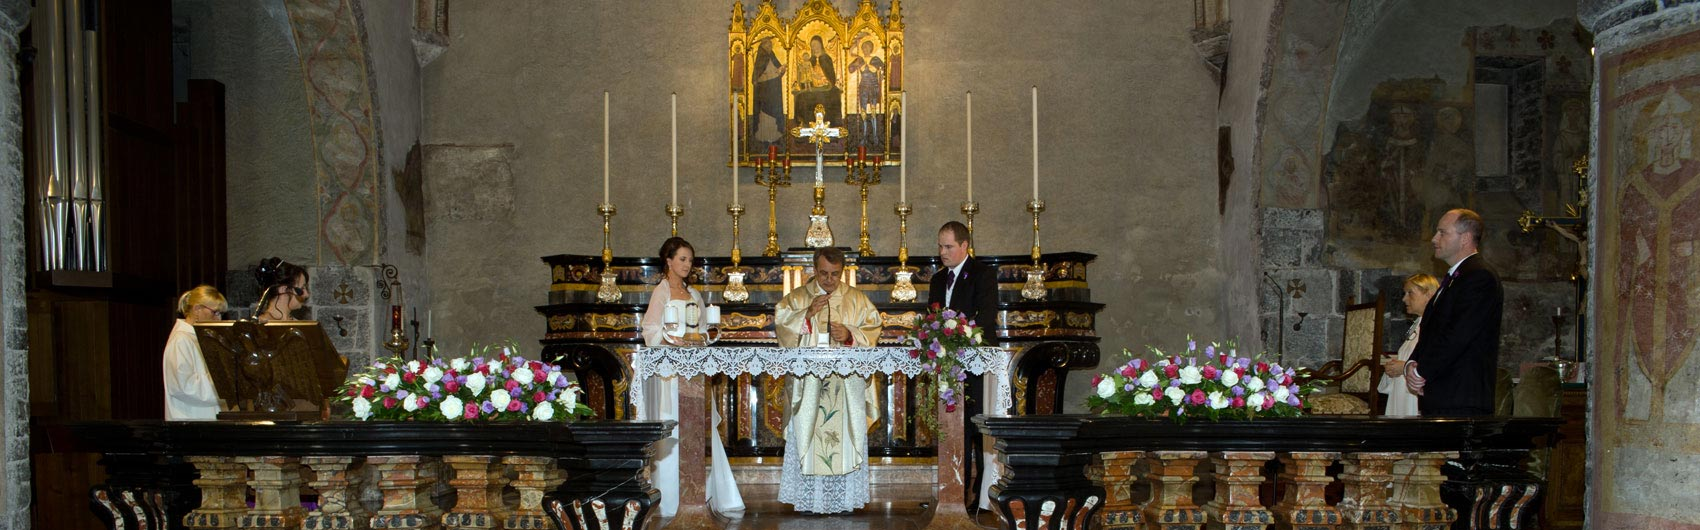 catholic-wedding-varenna